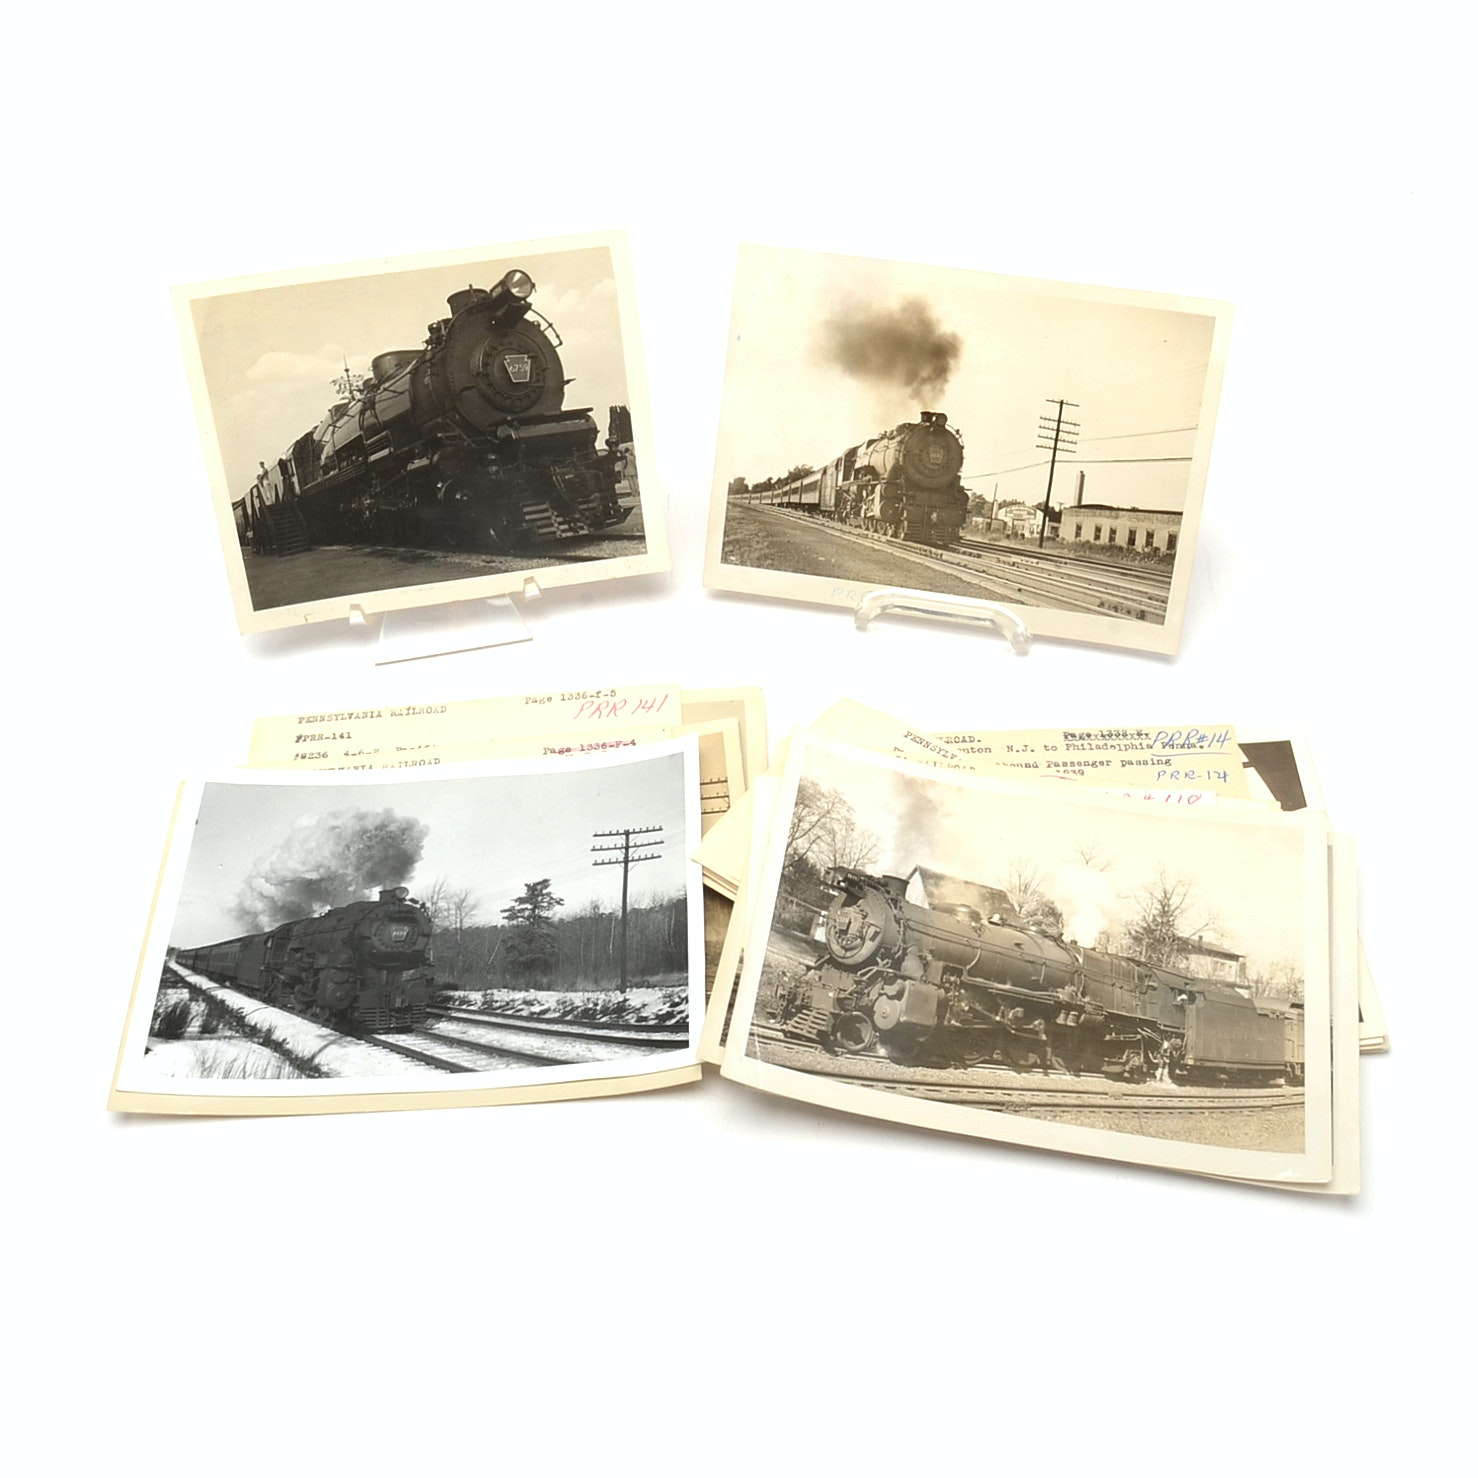 Collection of Pennsylvania Railroad Photographs from 1930s